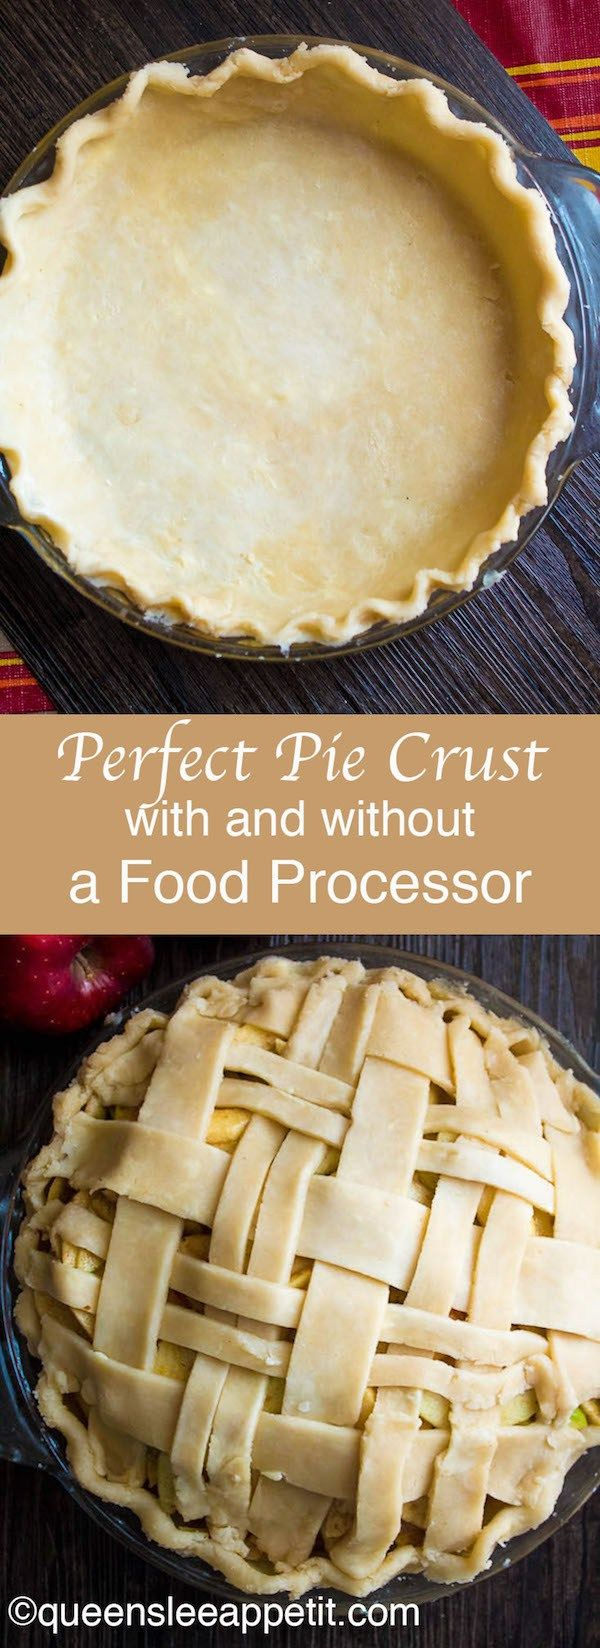 This pie crust is flaky, delicious and so easy to make. Whether you have a Food Processor or not, you can easily make a perfect pie crust that'll make all your homemade pies taste amazing!